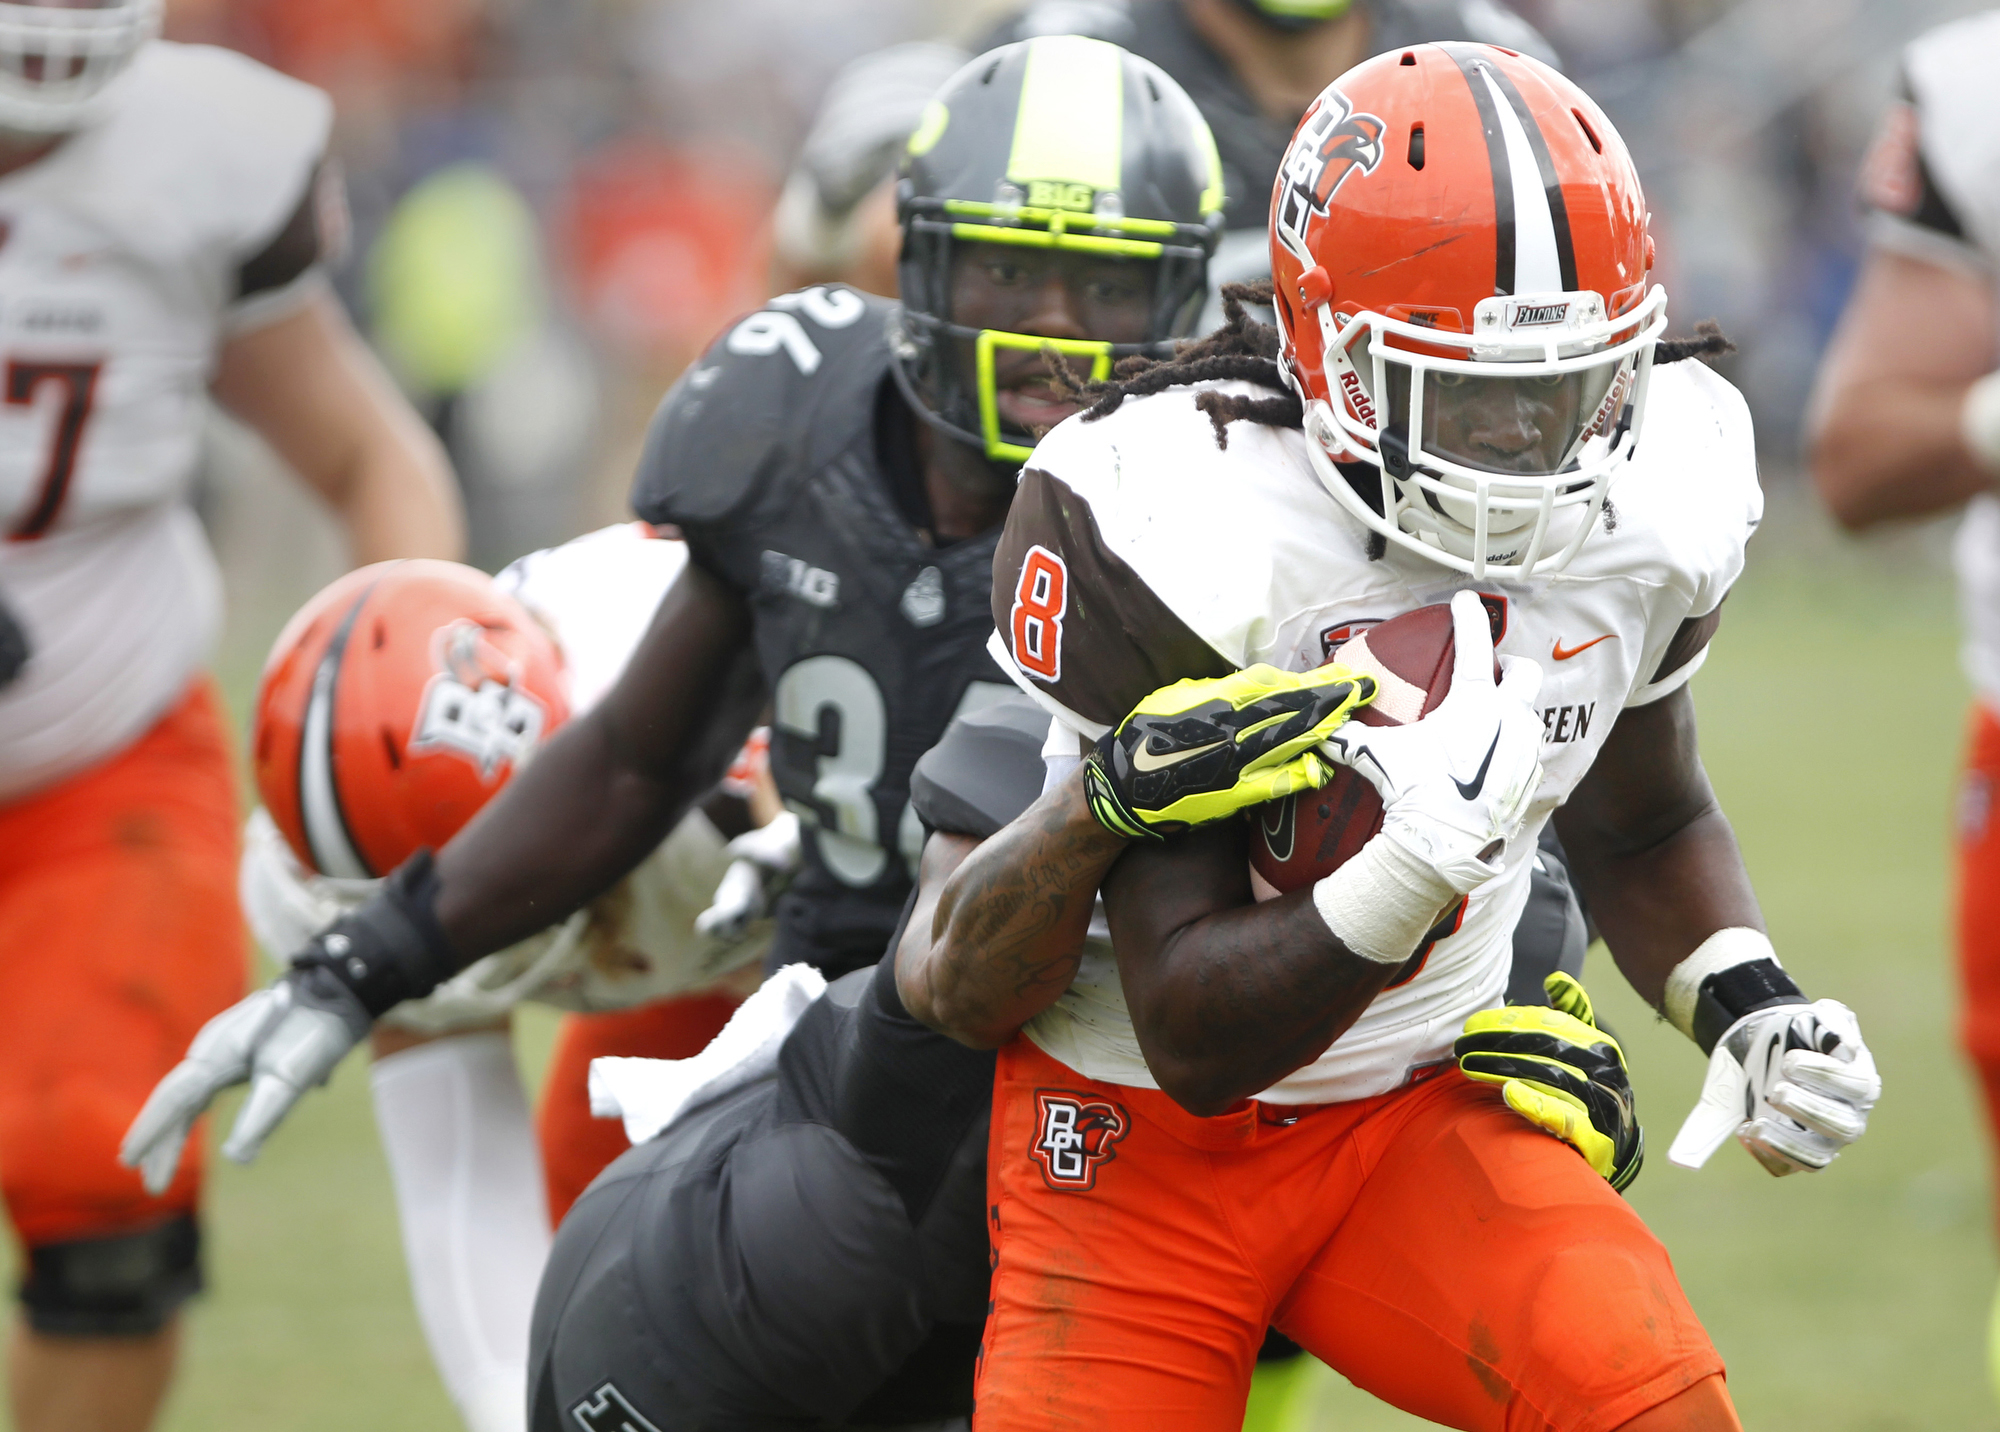 Bowling Green's Travis Greene runs for a touchdown with nine seconds remaining in the game to defeat Purdue 35-28 in an NCAA college football game Saturday, Sept. 26, 2015, in West Lafayette, Ind. (John Terhune /Journal & Courier via AP) MANDATORY CREDIT;